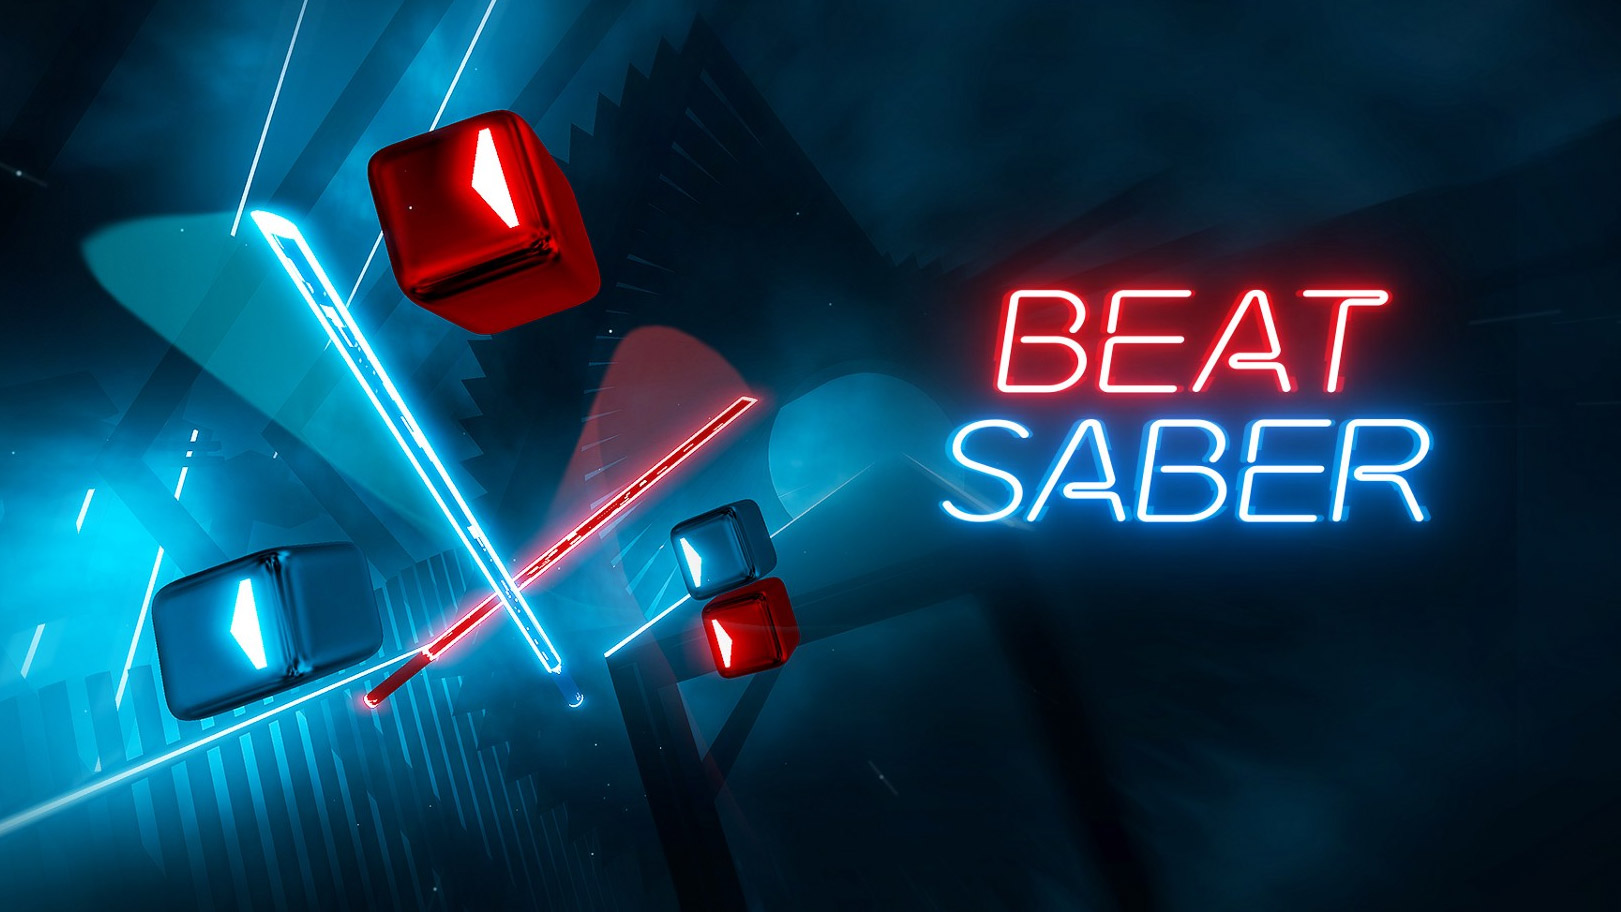 'Beat Saber' Gets First Paid Music Pack, Update Brings Previous PSVR Exclusives to PC – Road to VR